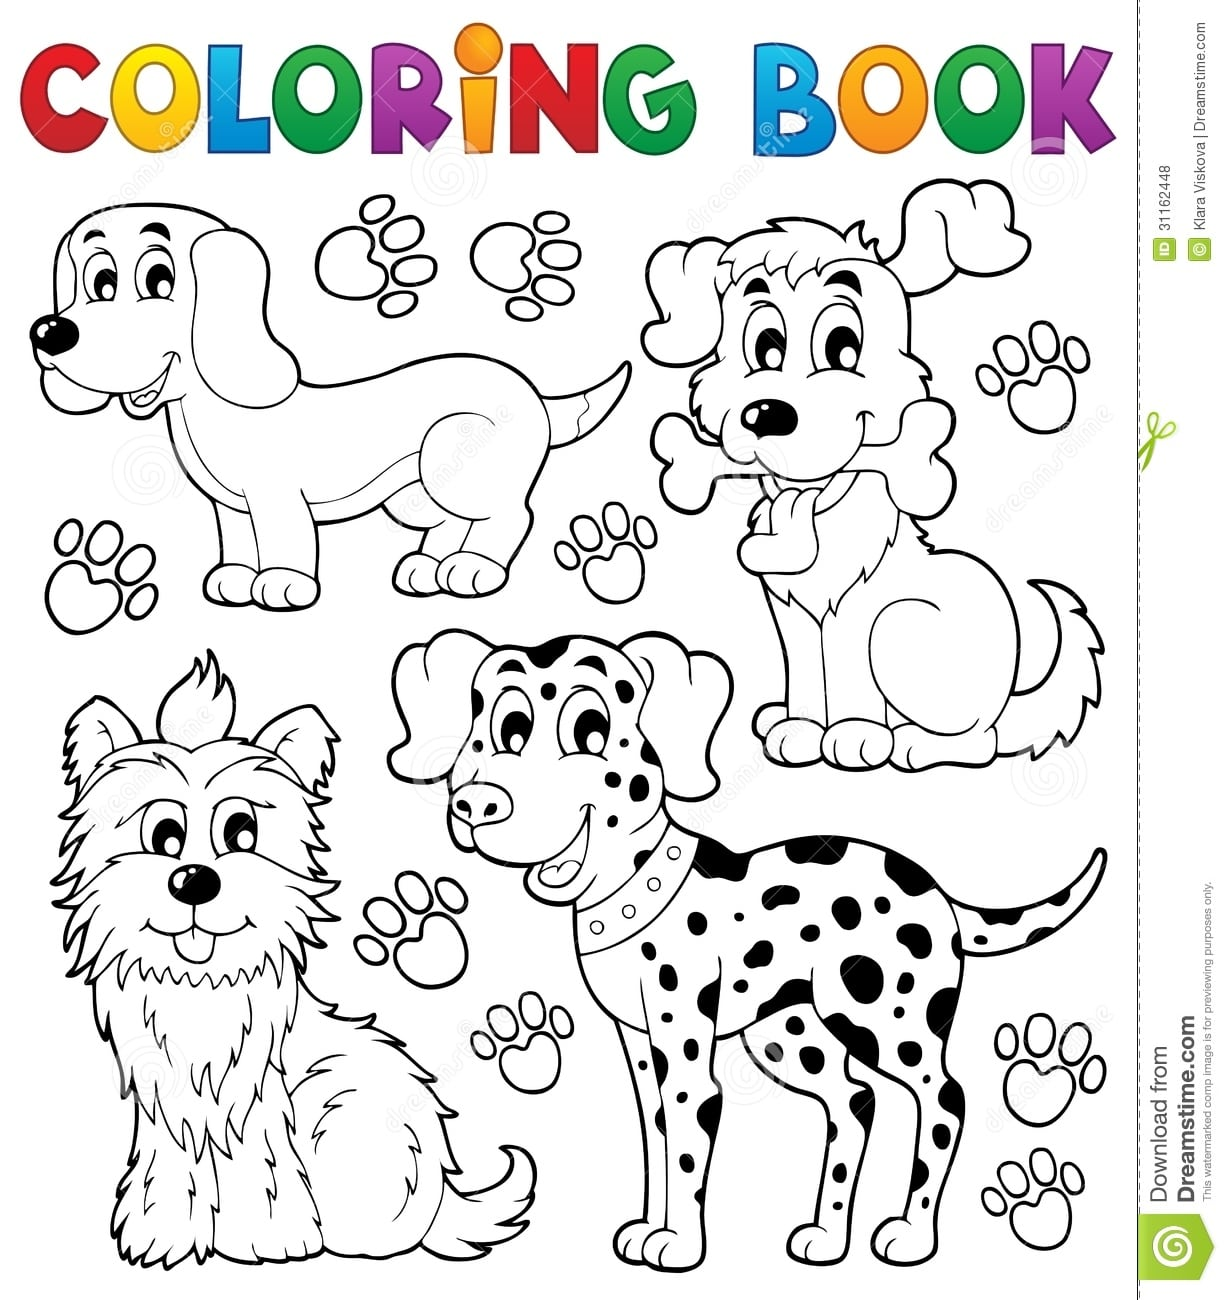 Coloring Book Dog Theme 5 Stock Vector  Illustration Of Looking